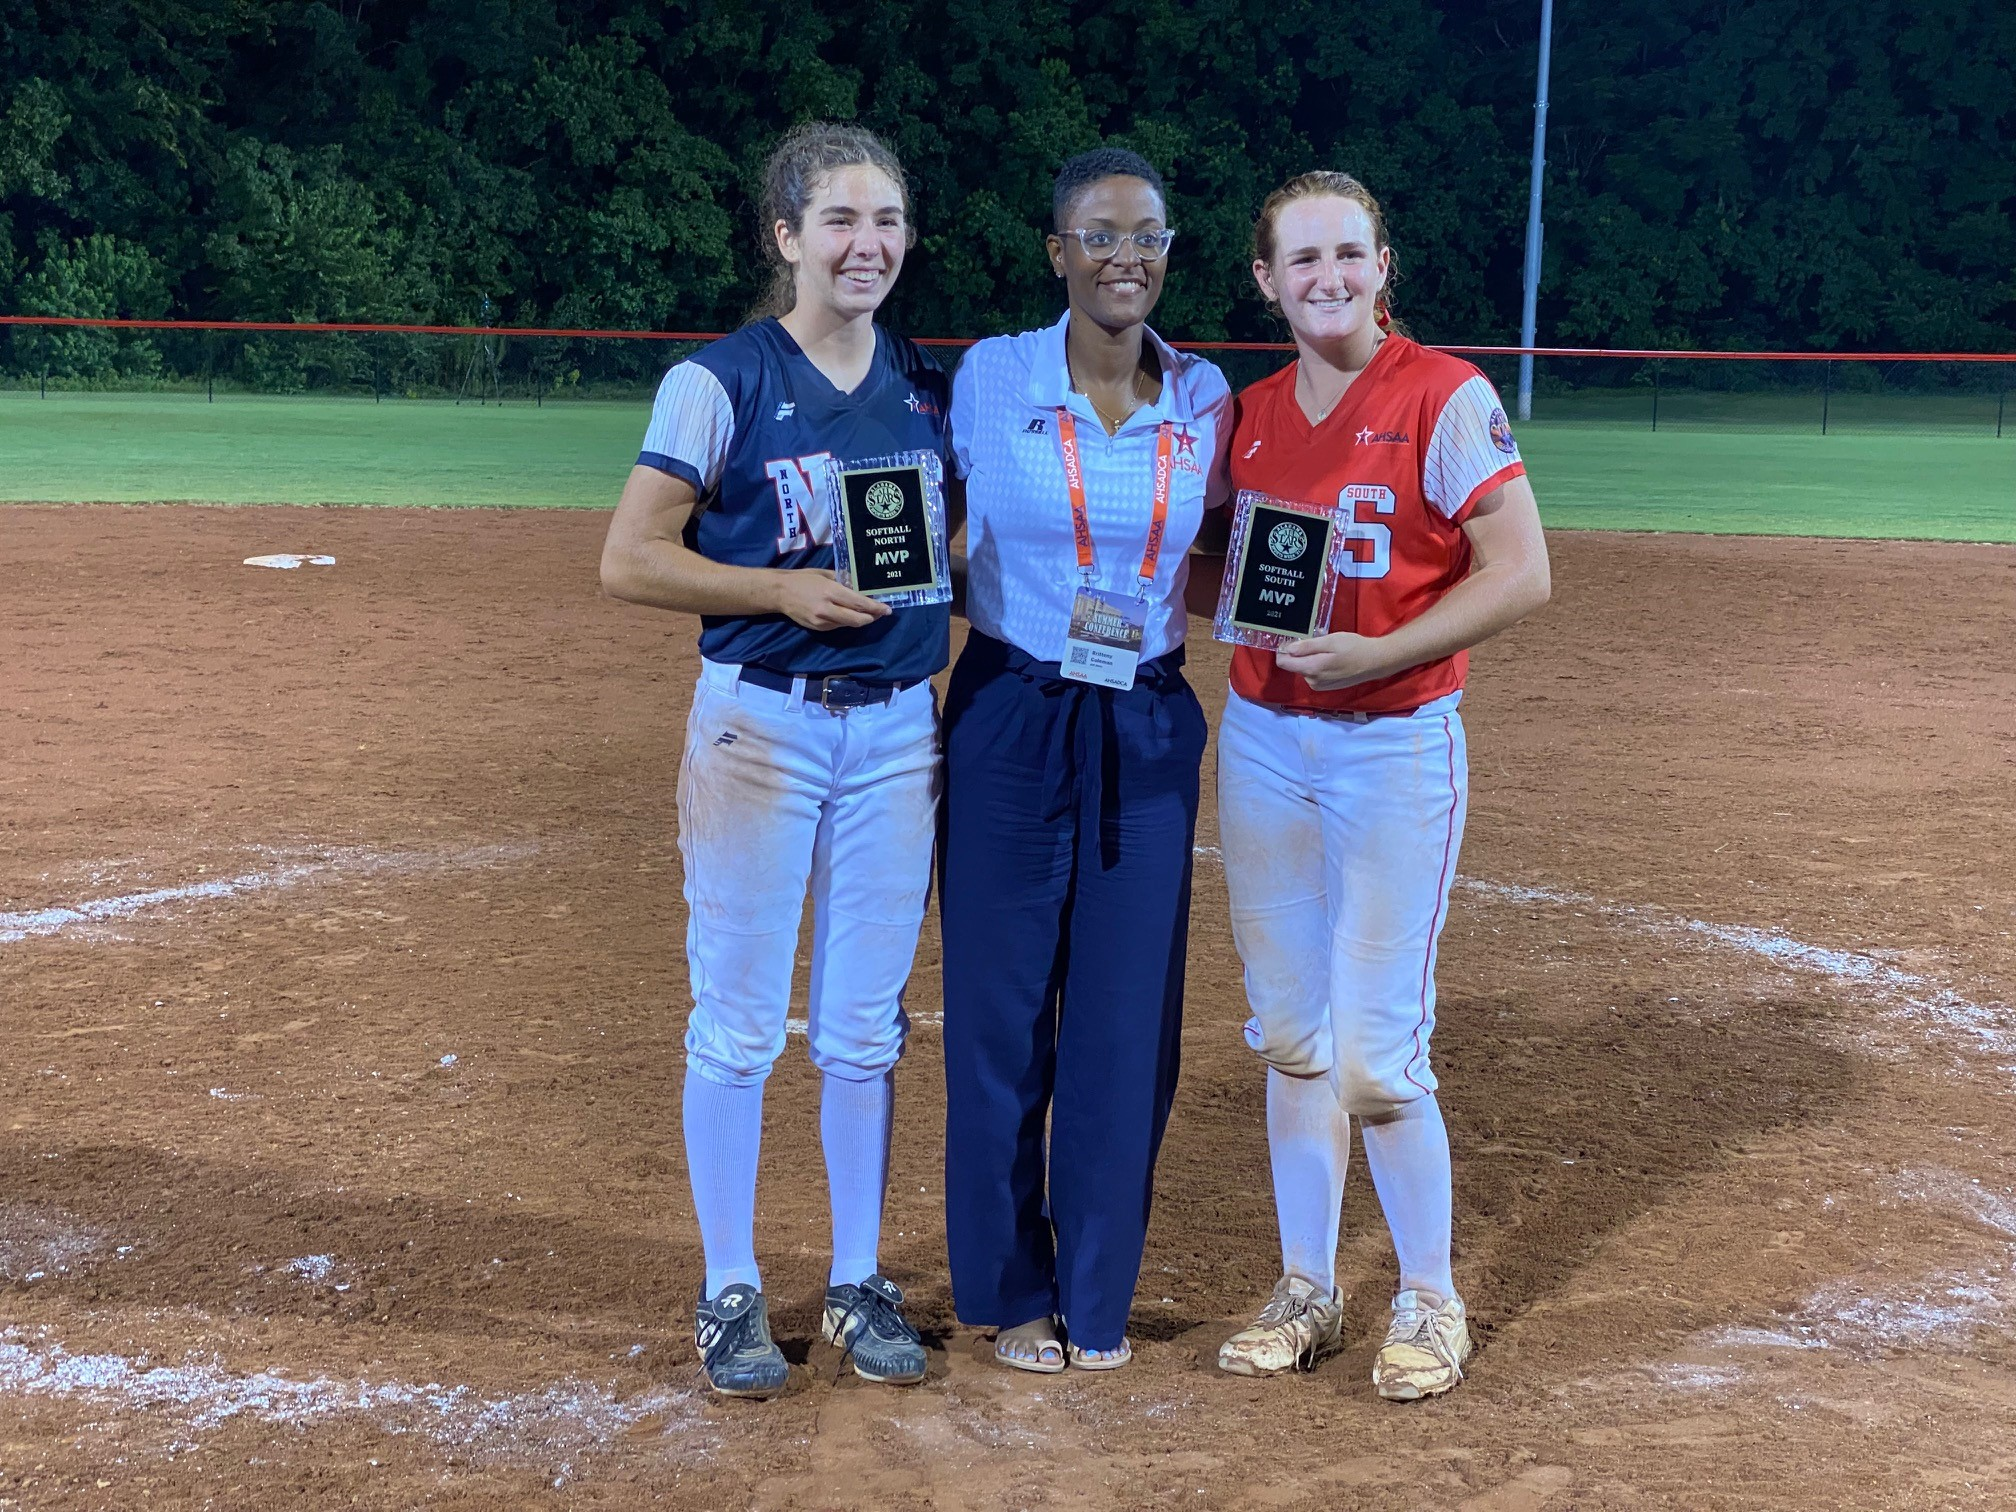 North Downs South 11-8 in 8 Innings and 6-1 in Nightcap to Complete All-Star Sweep